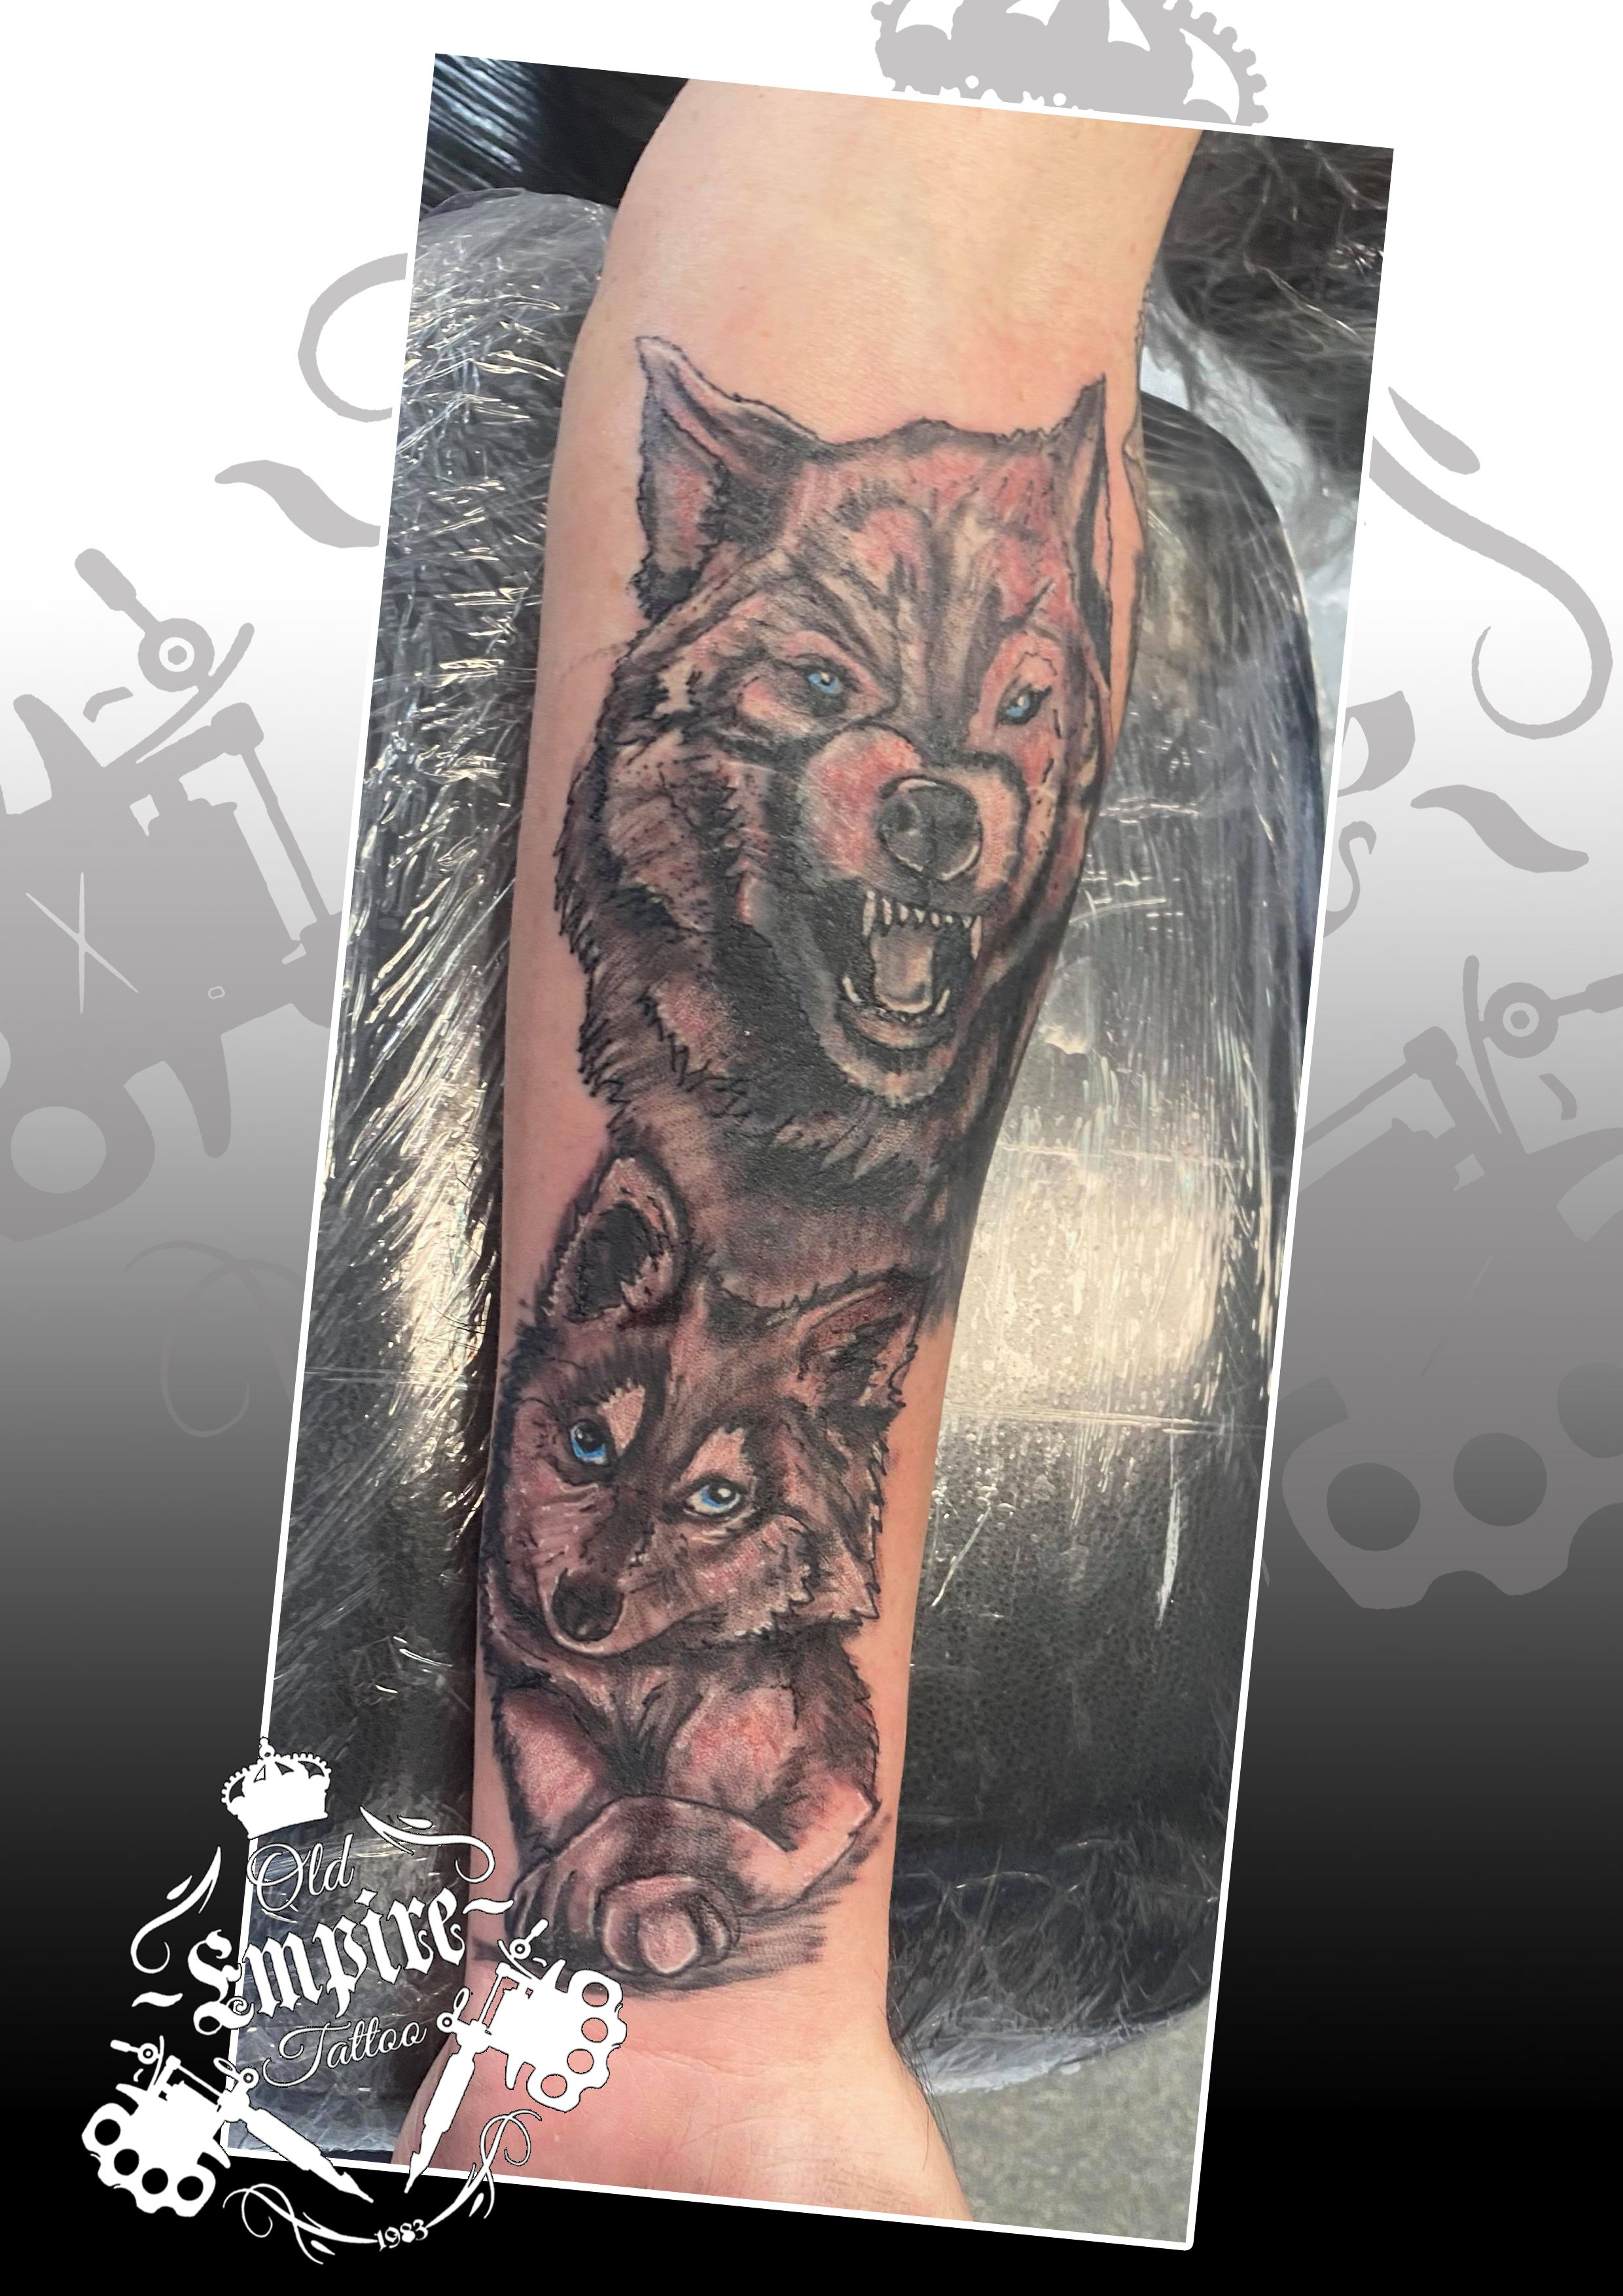 Continuing work on a #Sleeve with a #Wolf #Tattoo! #WolfCub #WolfTattoo #SleeveTattoo #GuysWithTattoos #BlackAndGreyTattoo #Nature #WolfPack #WolfFamily #Empire #TattooStudioNearMe #Ink #OldEmpireTattoo